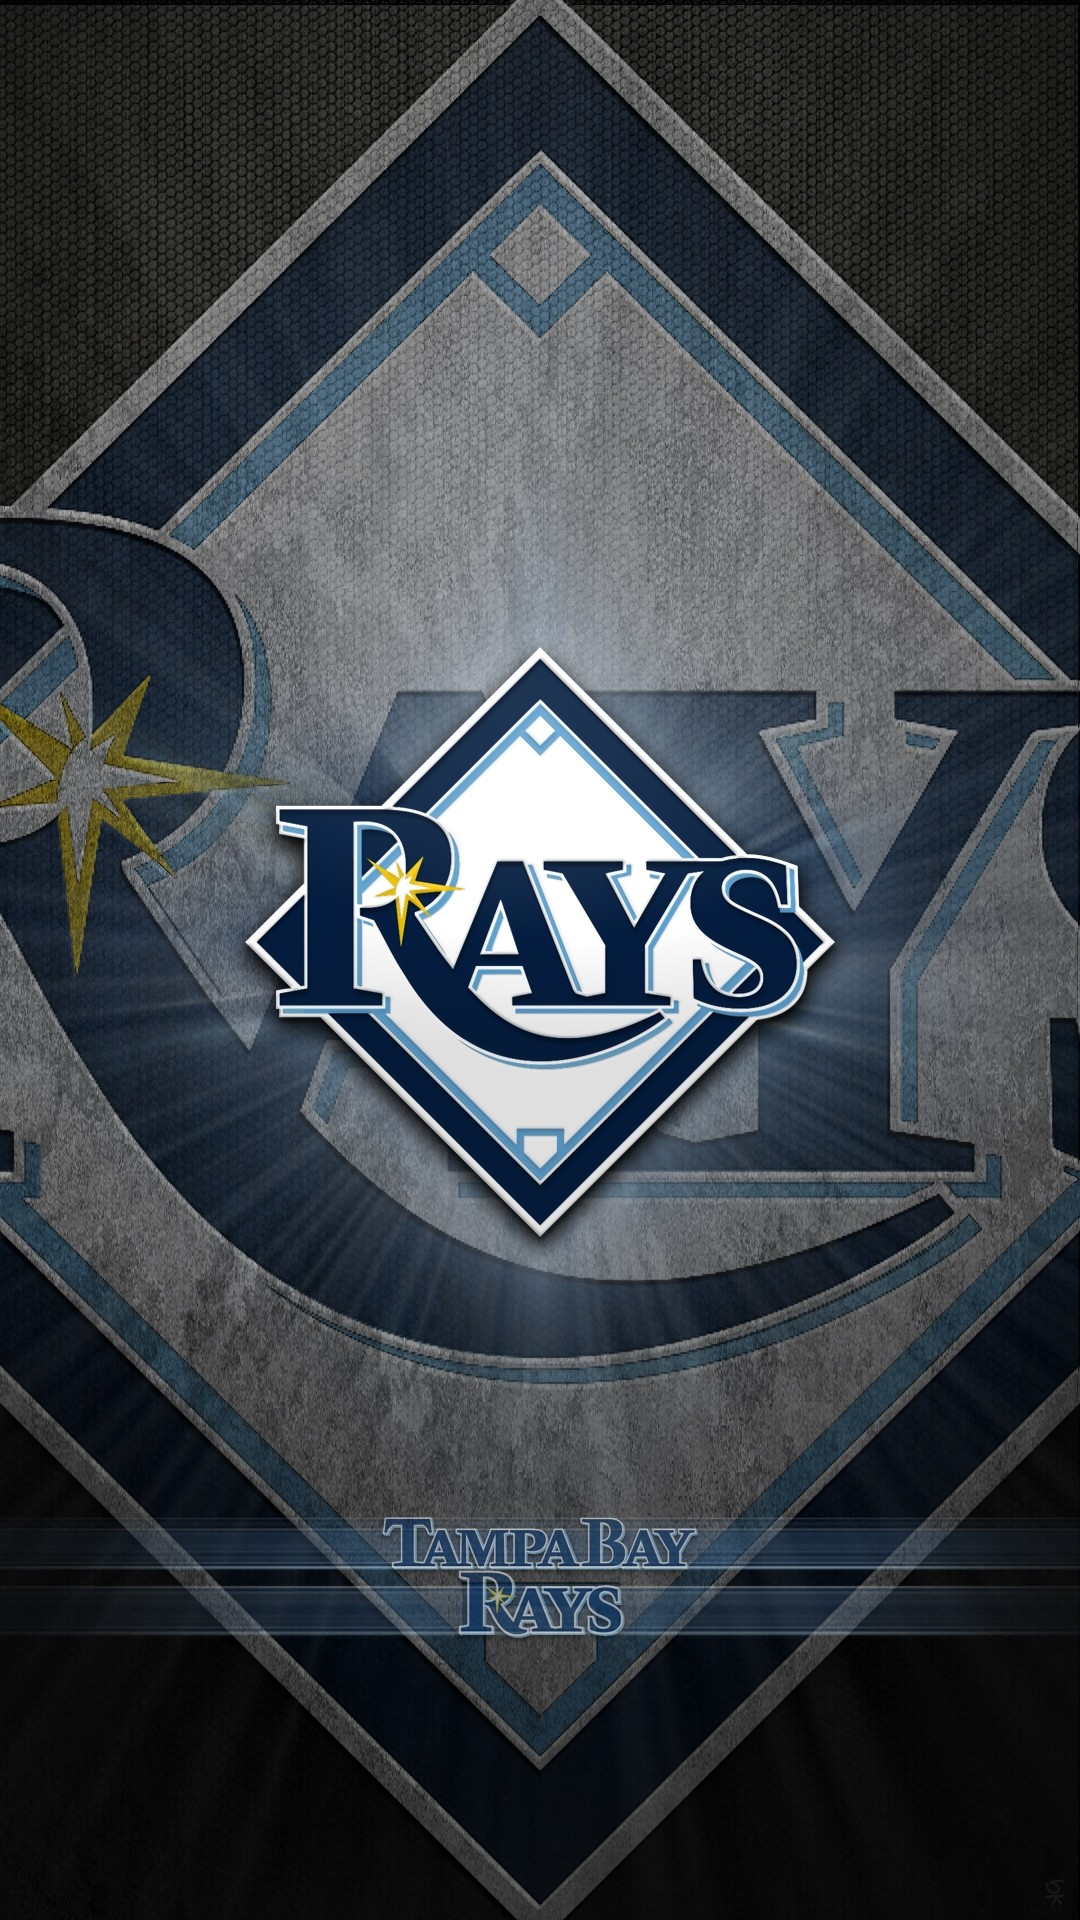 … Tampa Bay Rays HD Wallpaper for Iphone 6 Plus in Tampa Bay Rays Phone  Wallpapers …